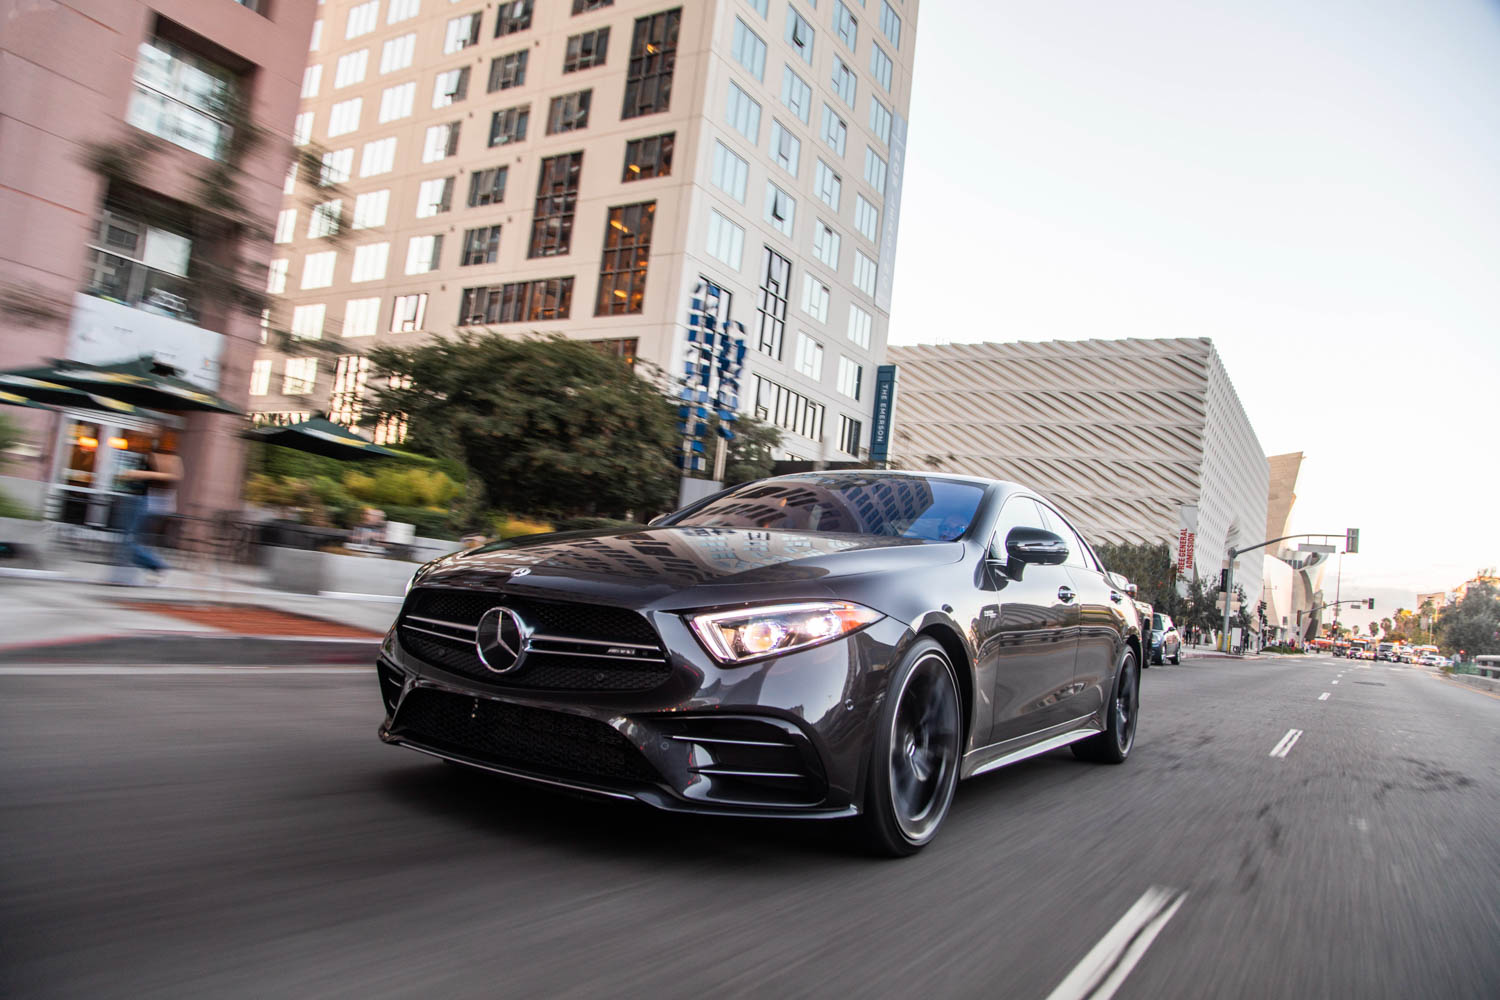 2019 Mercedes-AMG CLS53 low front 3/4